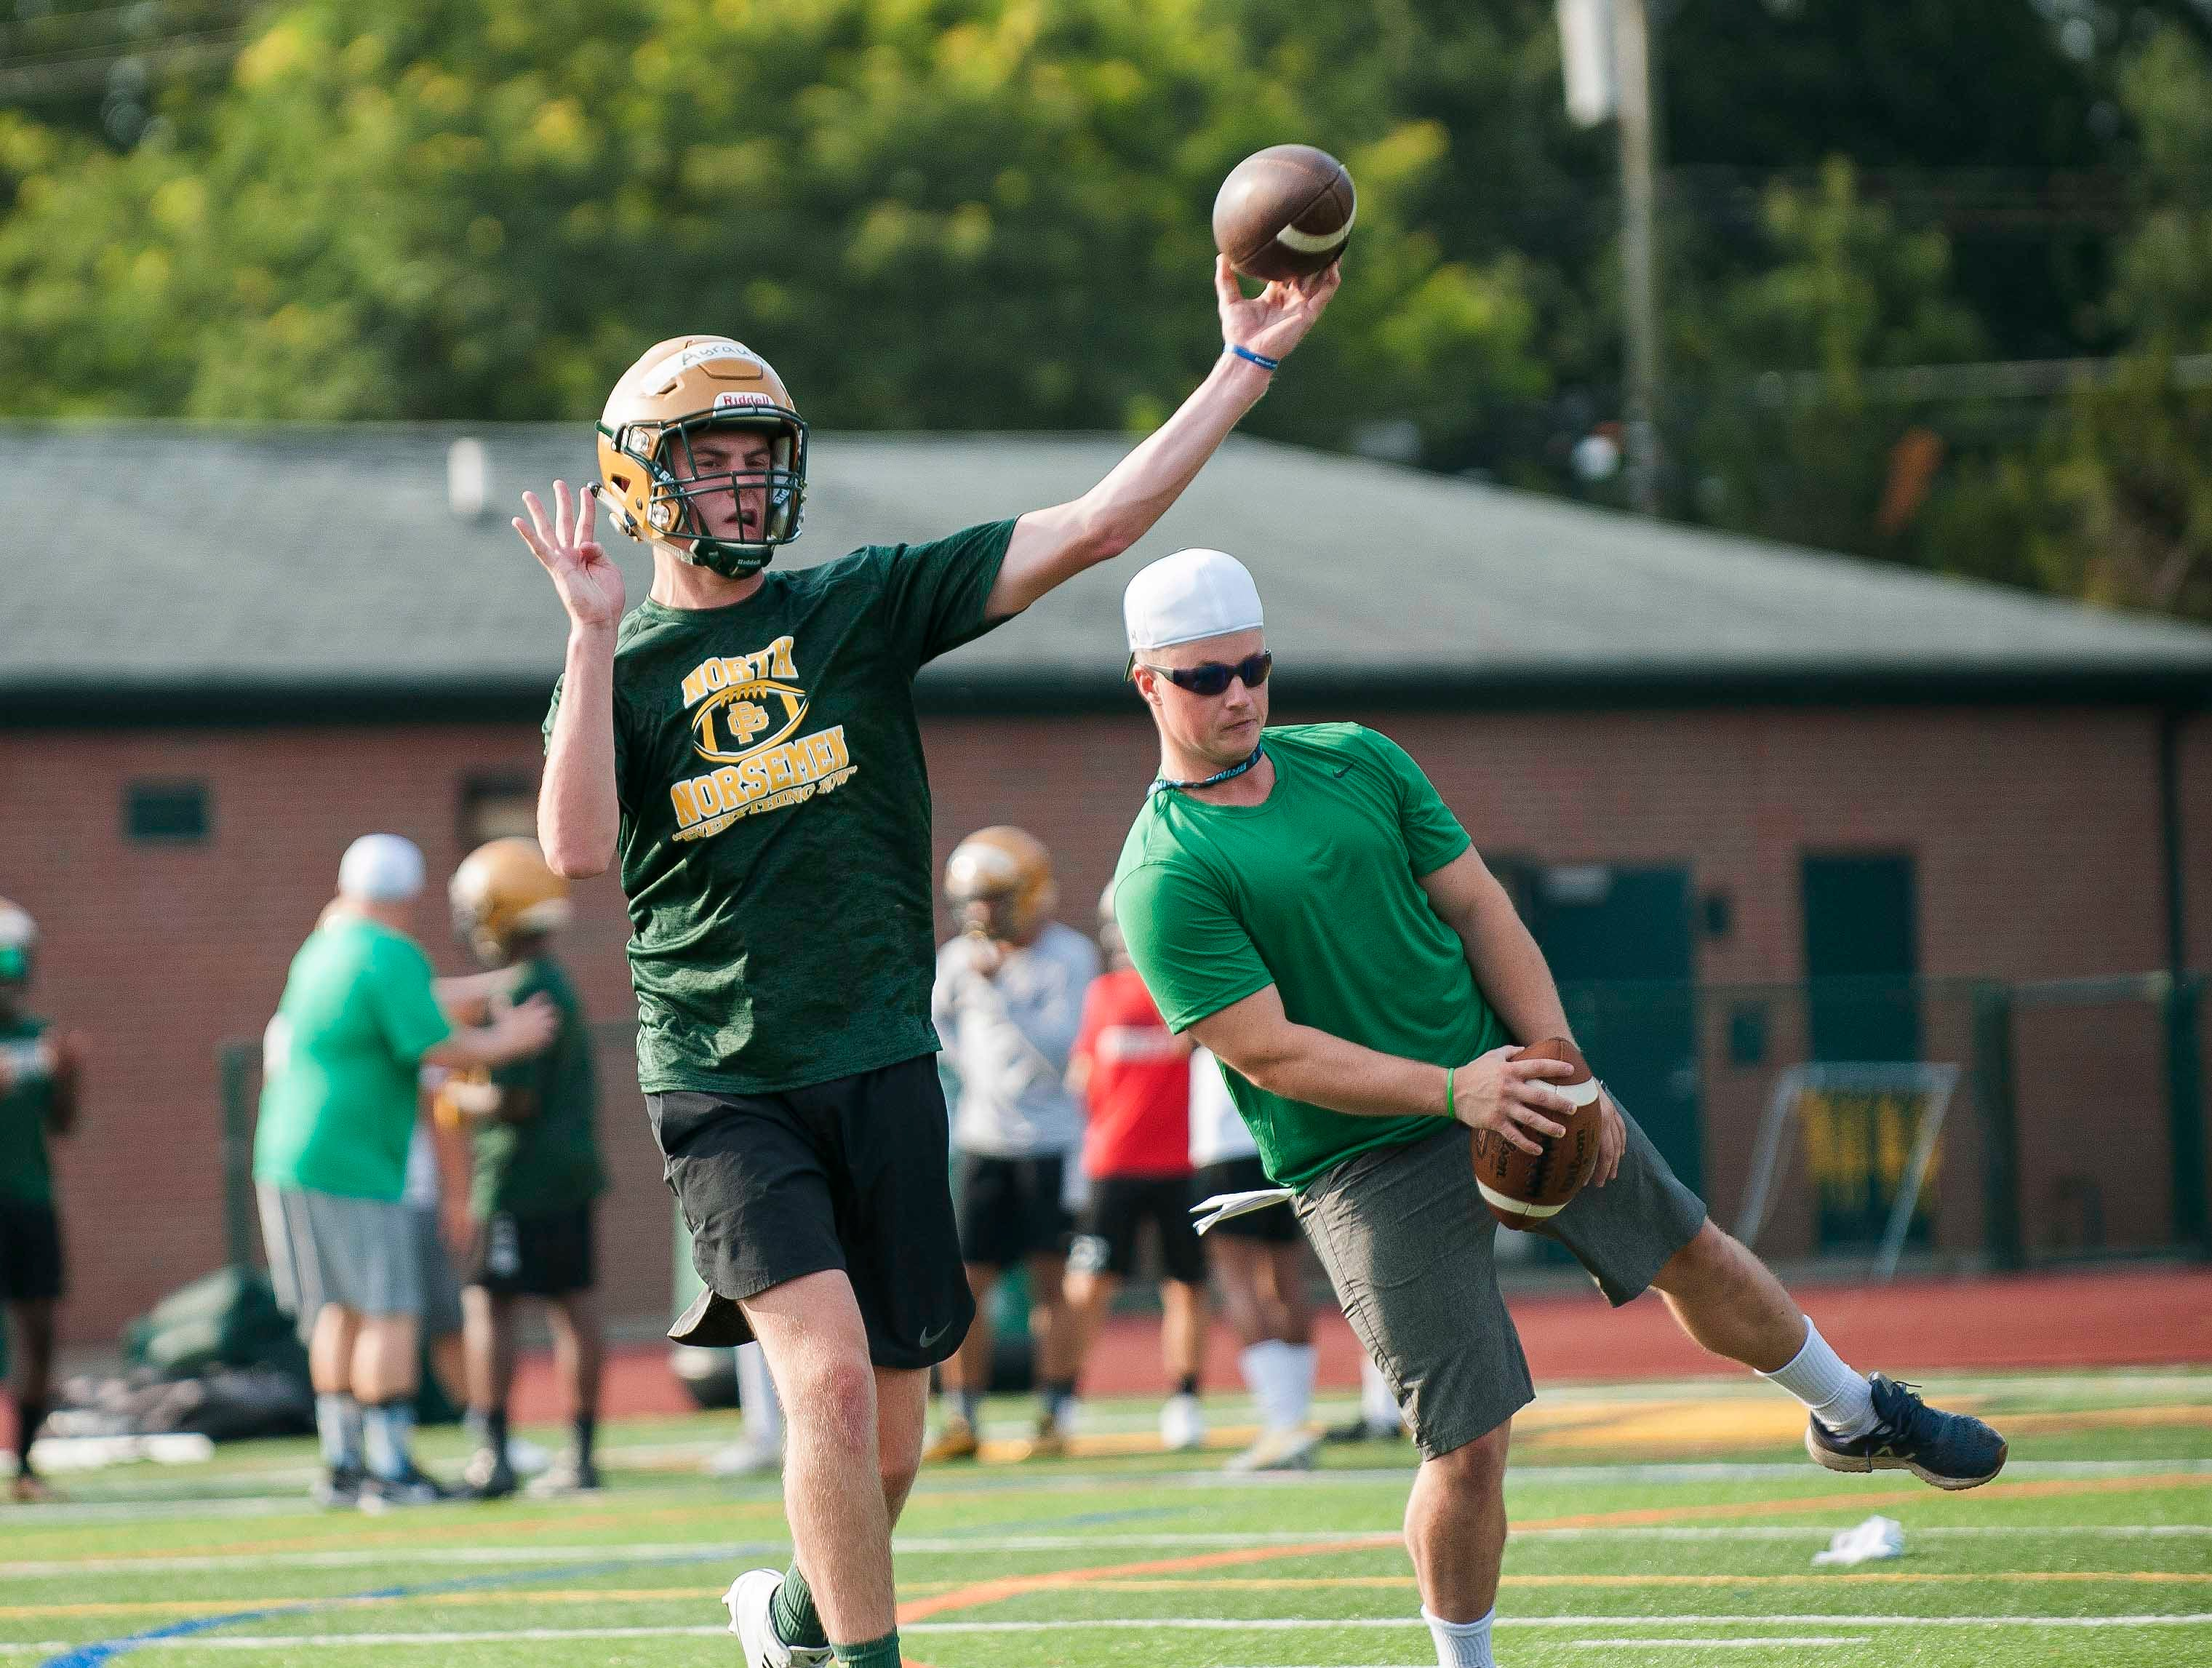 Quarterback Joe Ayrault throws a pass with quarterbacks coach Hannibal Roda (right) following his movements during the first practice of the season.